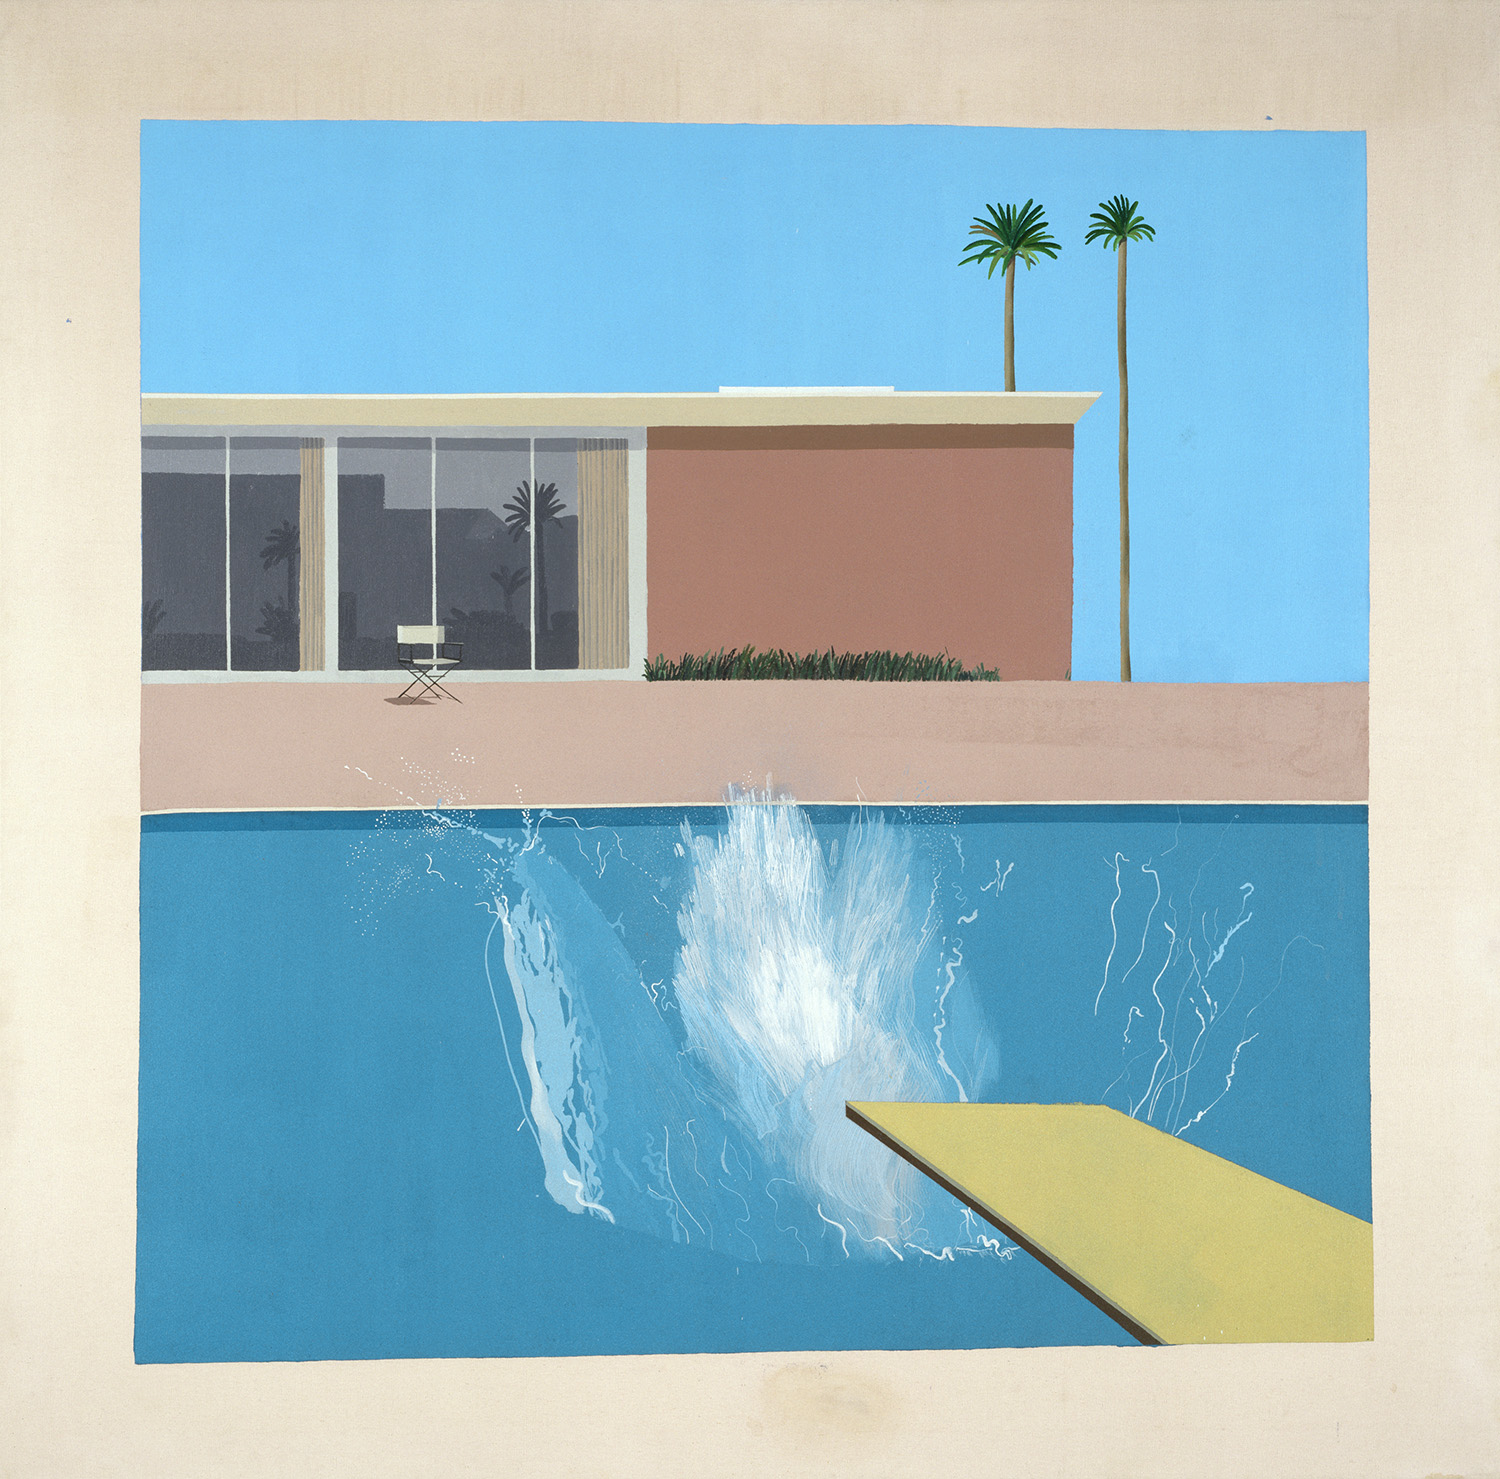 "David Hockney, ""A Bigger Splash"" 1967, Acrylic on canvas, 96 x 96"" (242.5 x 243.9 cm)  © David Hockney, Collection Tate, U.K. ©Tate, London 2019"